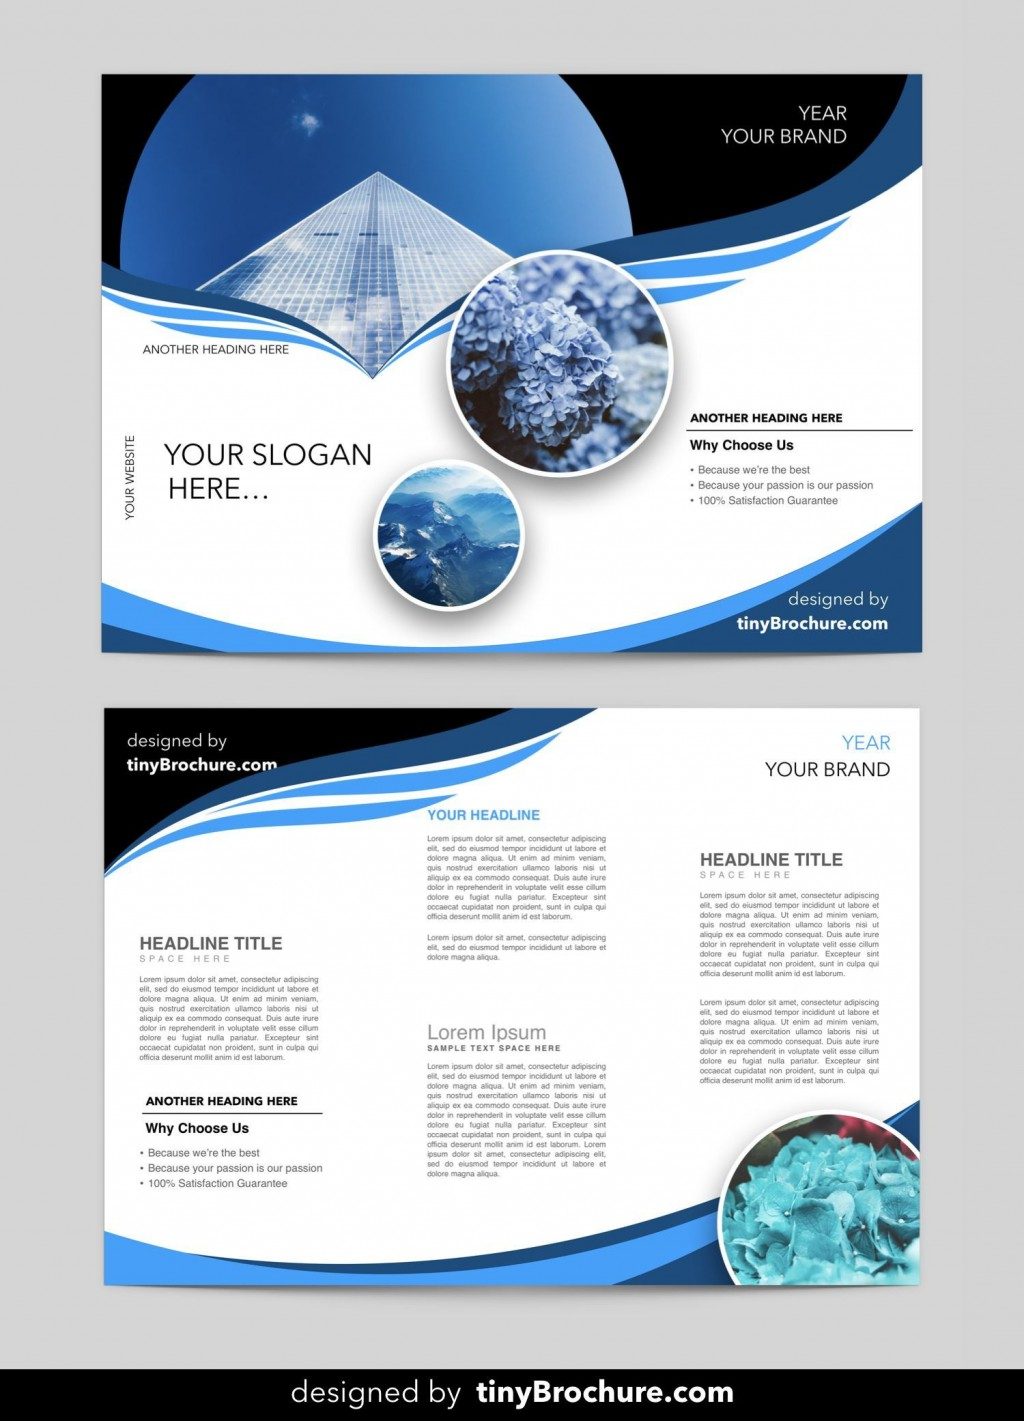 003 Wonderful Download Brochure Template For Word 2007 High Definition Large